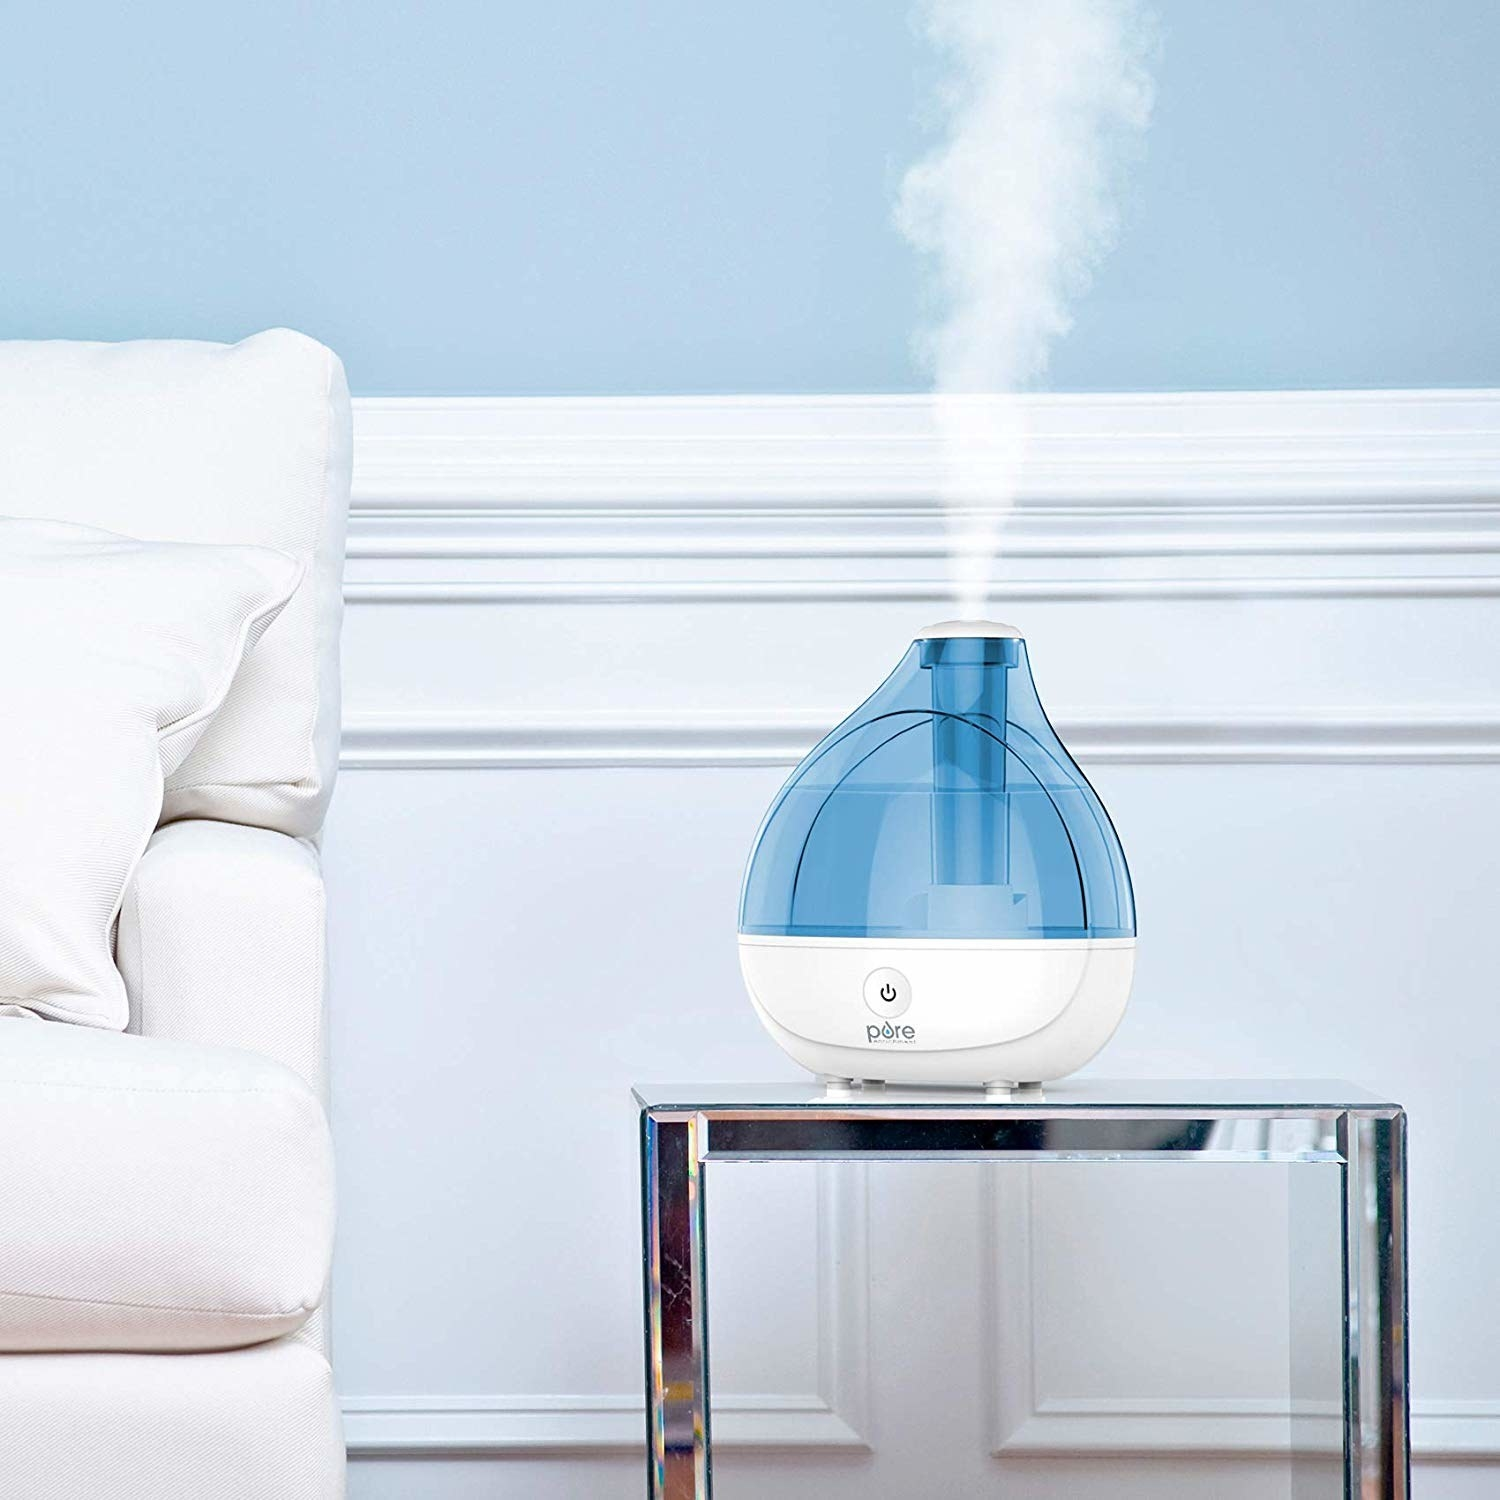 The tear drop–shaped humidifier